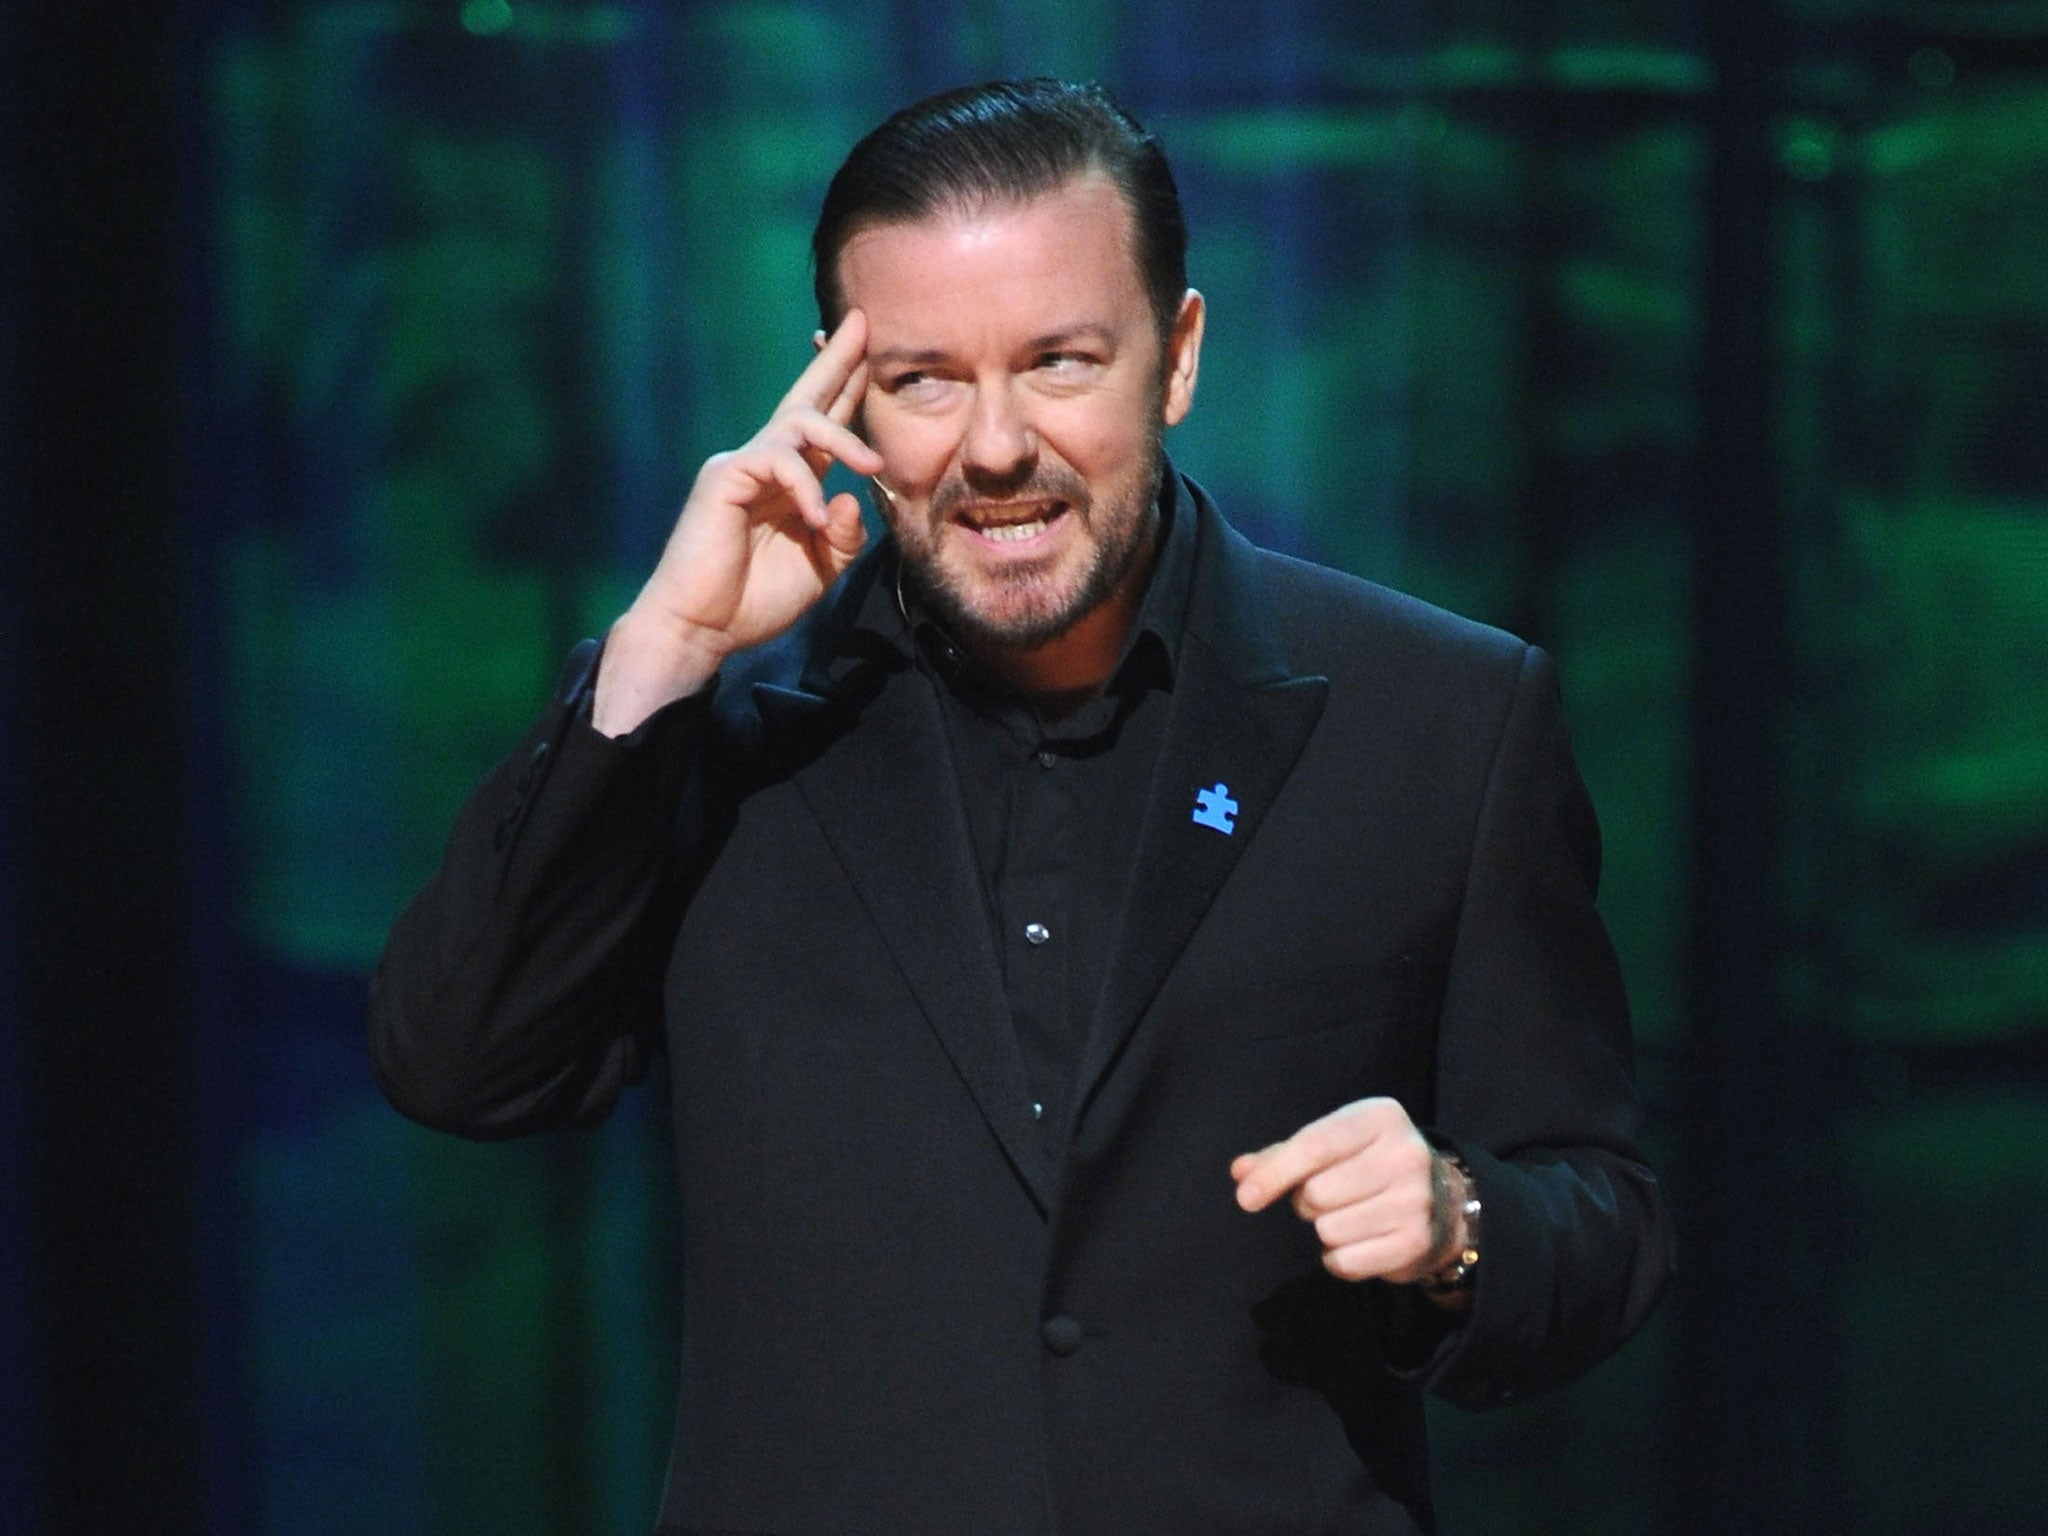 Ricky Gervais Claims Another Extras Prophecy After